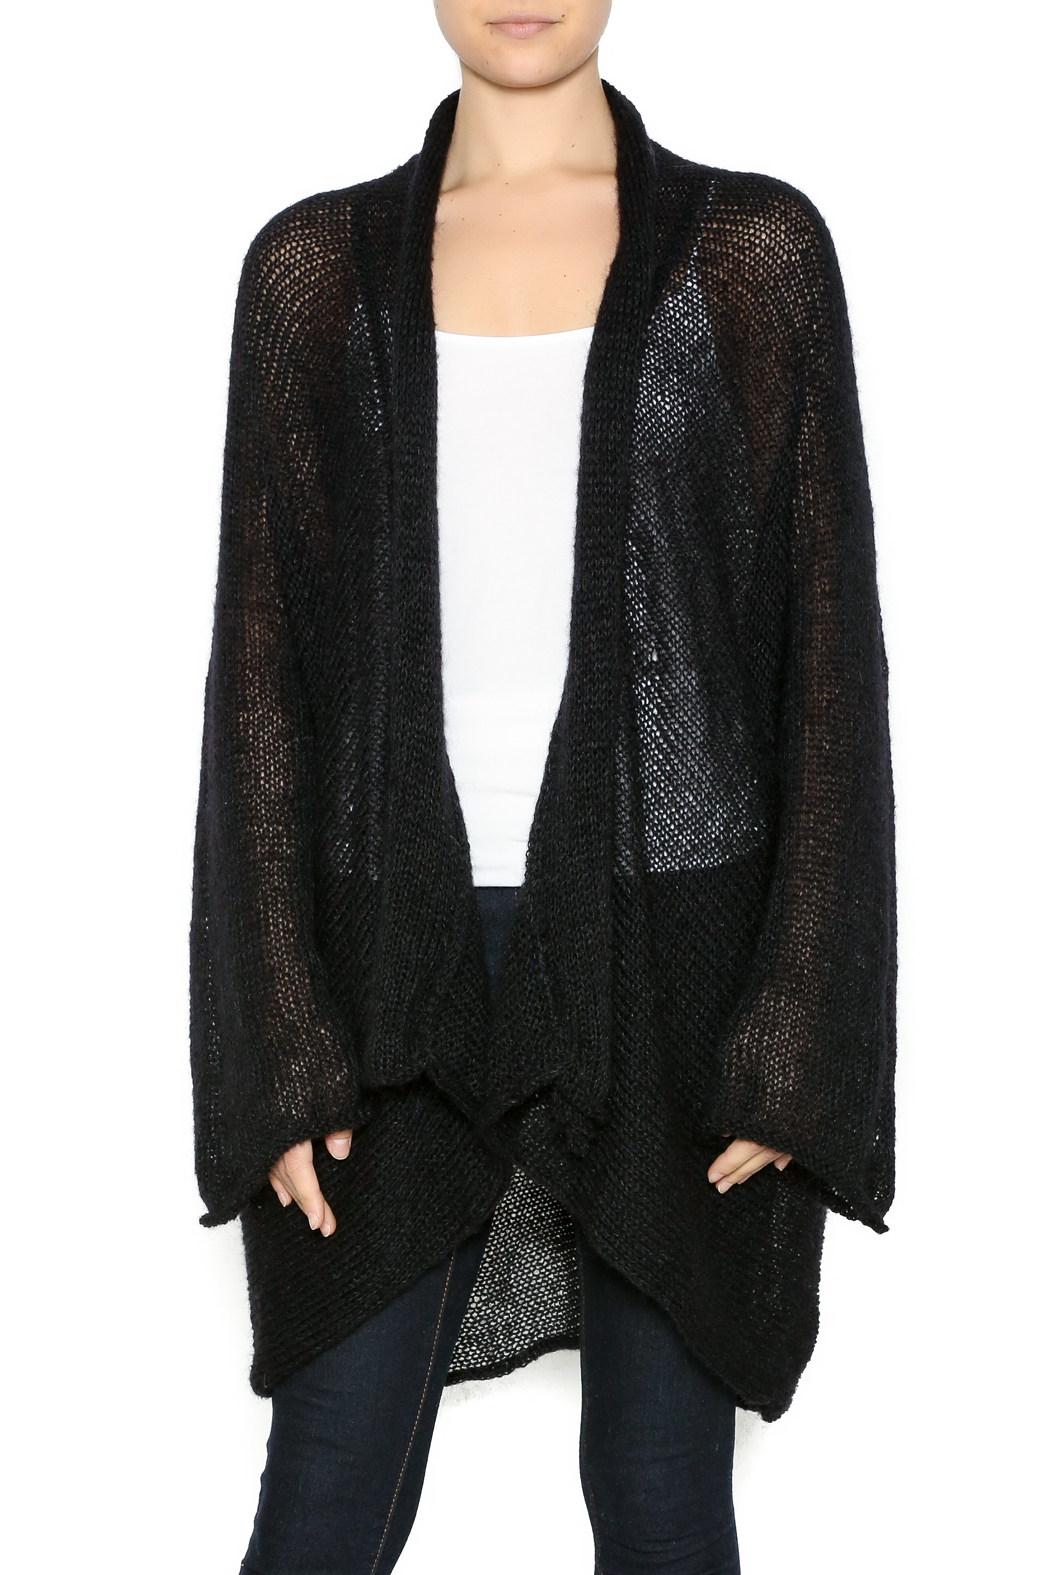 DC KNITS Black Mohair Cardigan from New Mexico — Shoptiques a4867f735